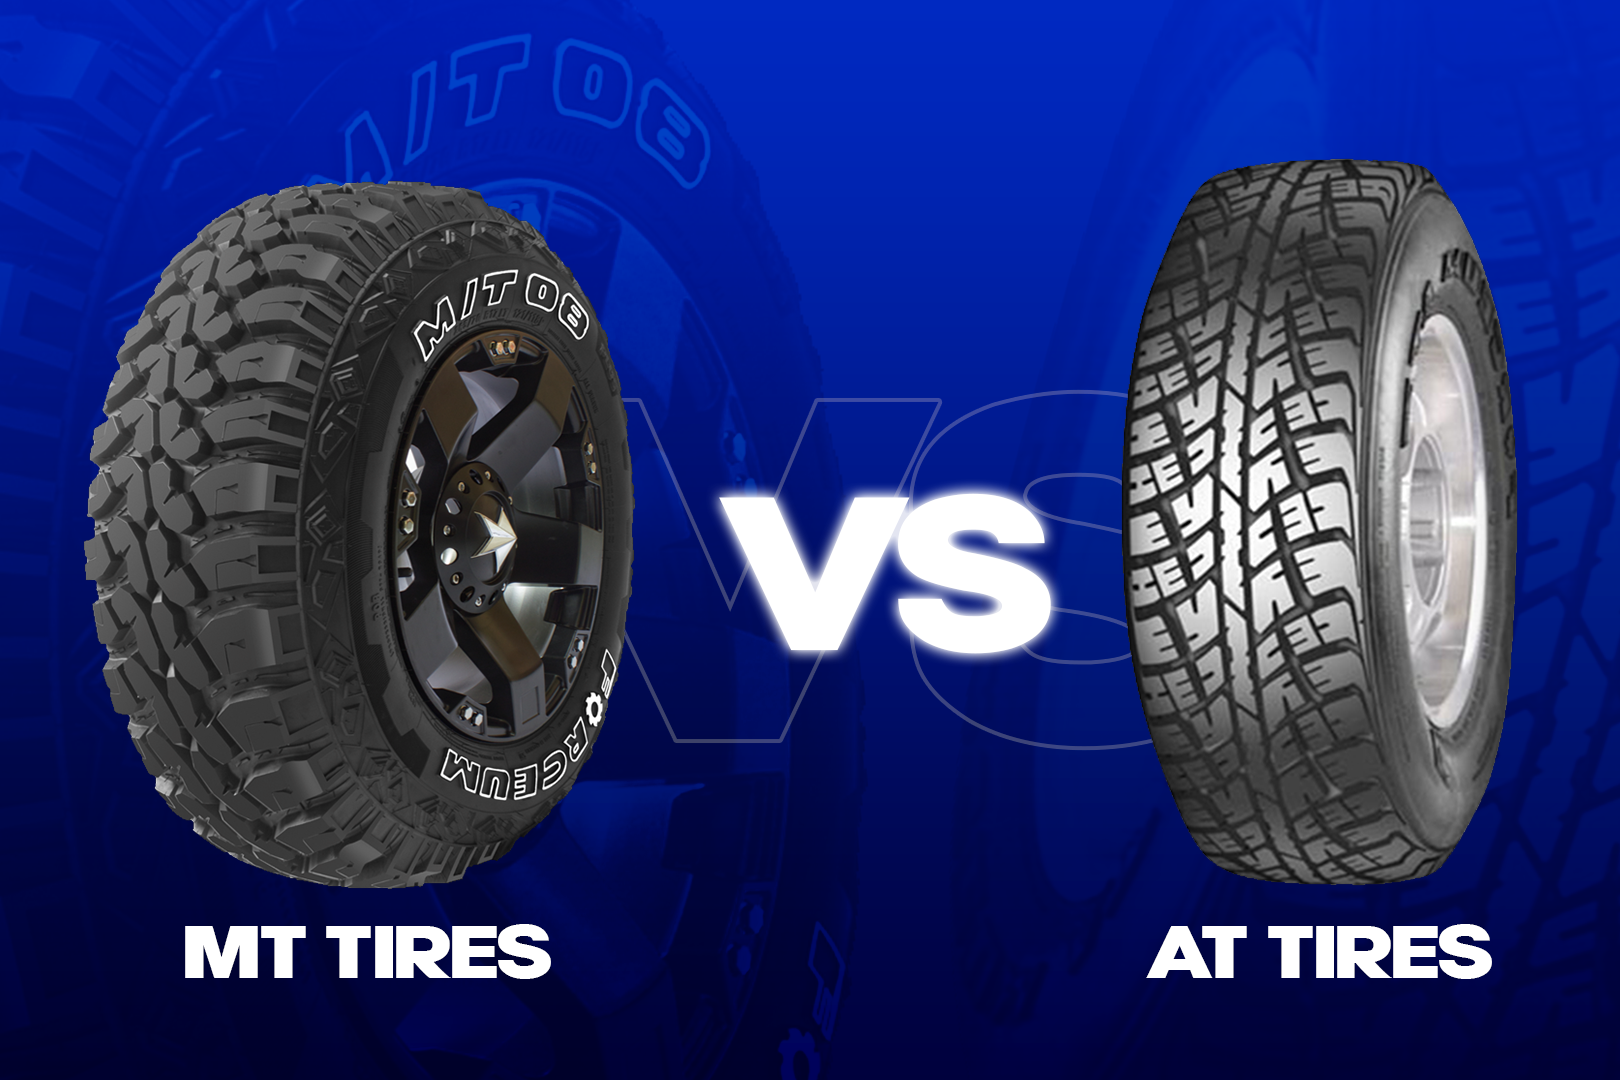 What Is The Difference Between AT and MT Tyres?